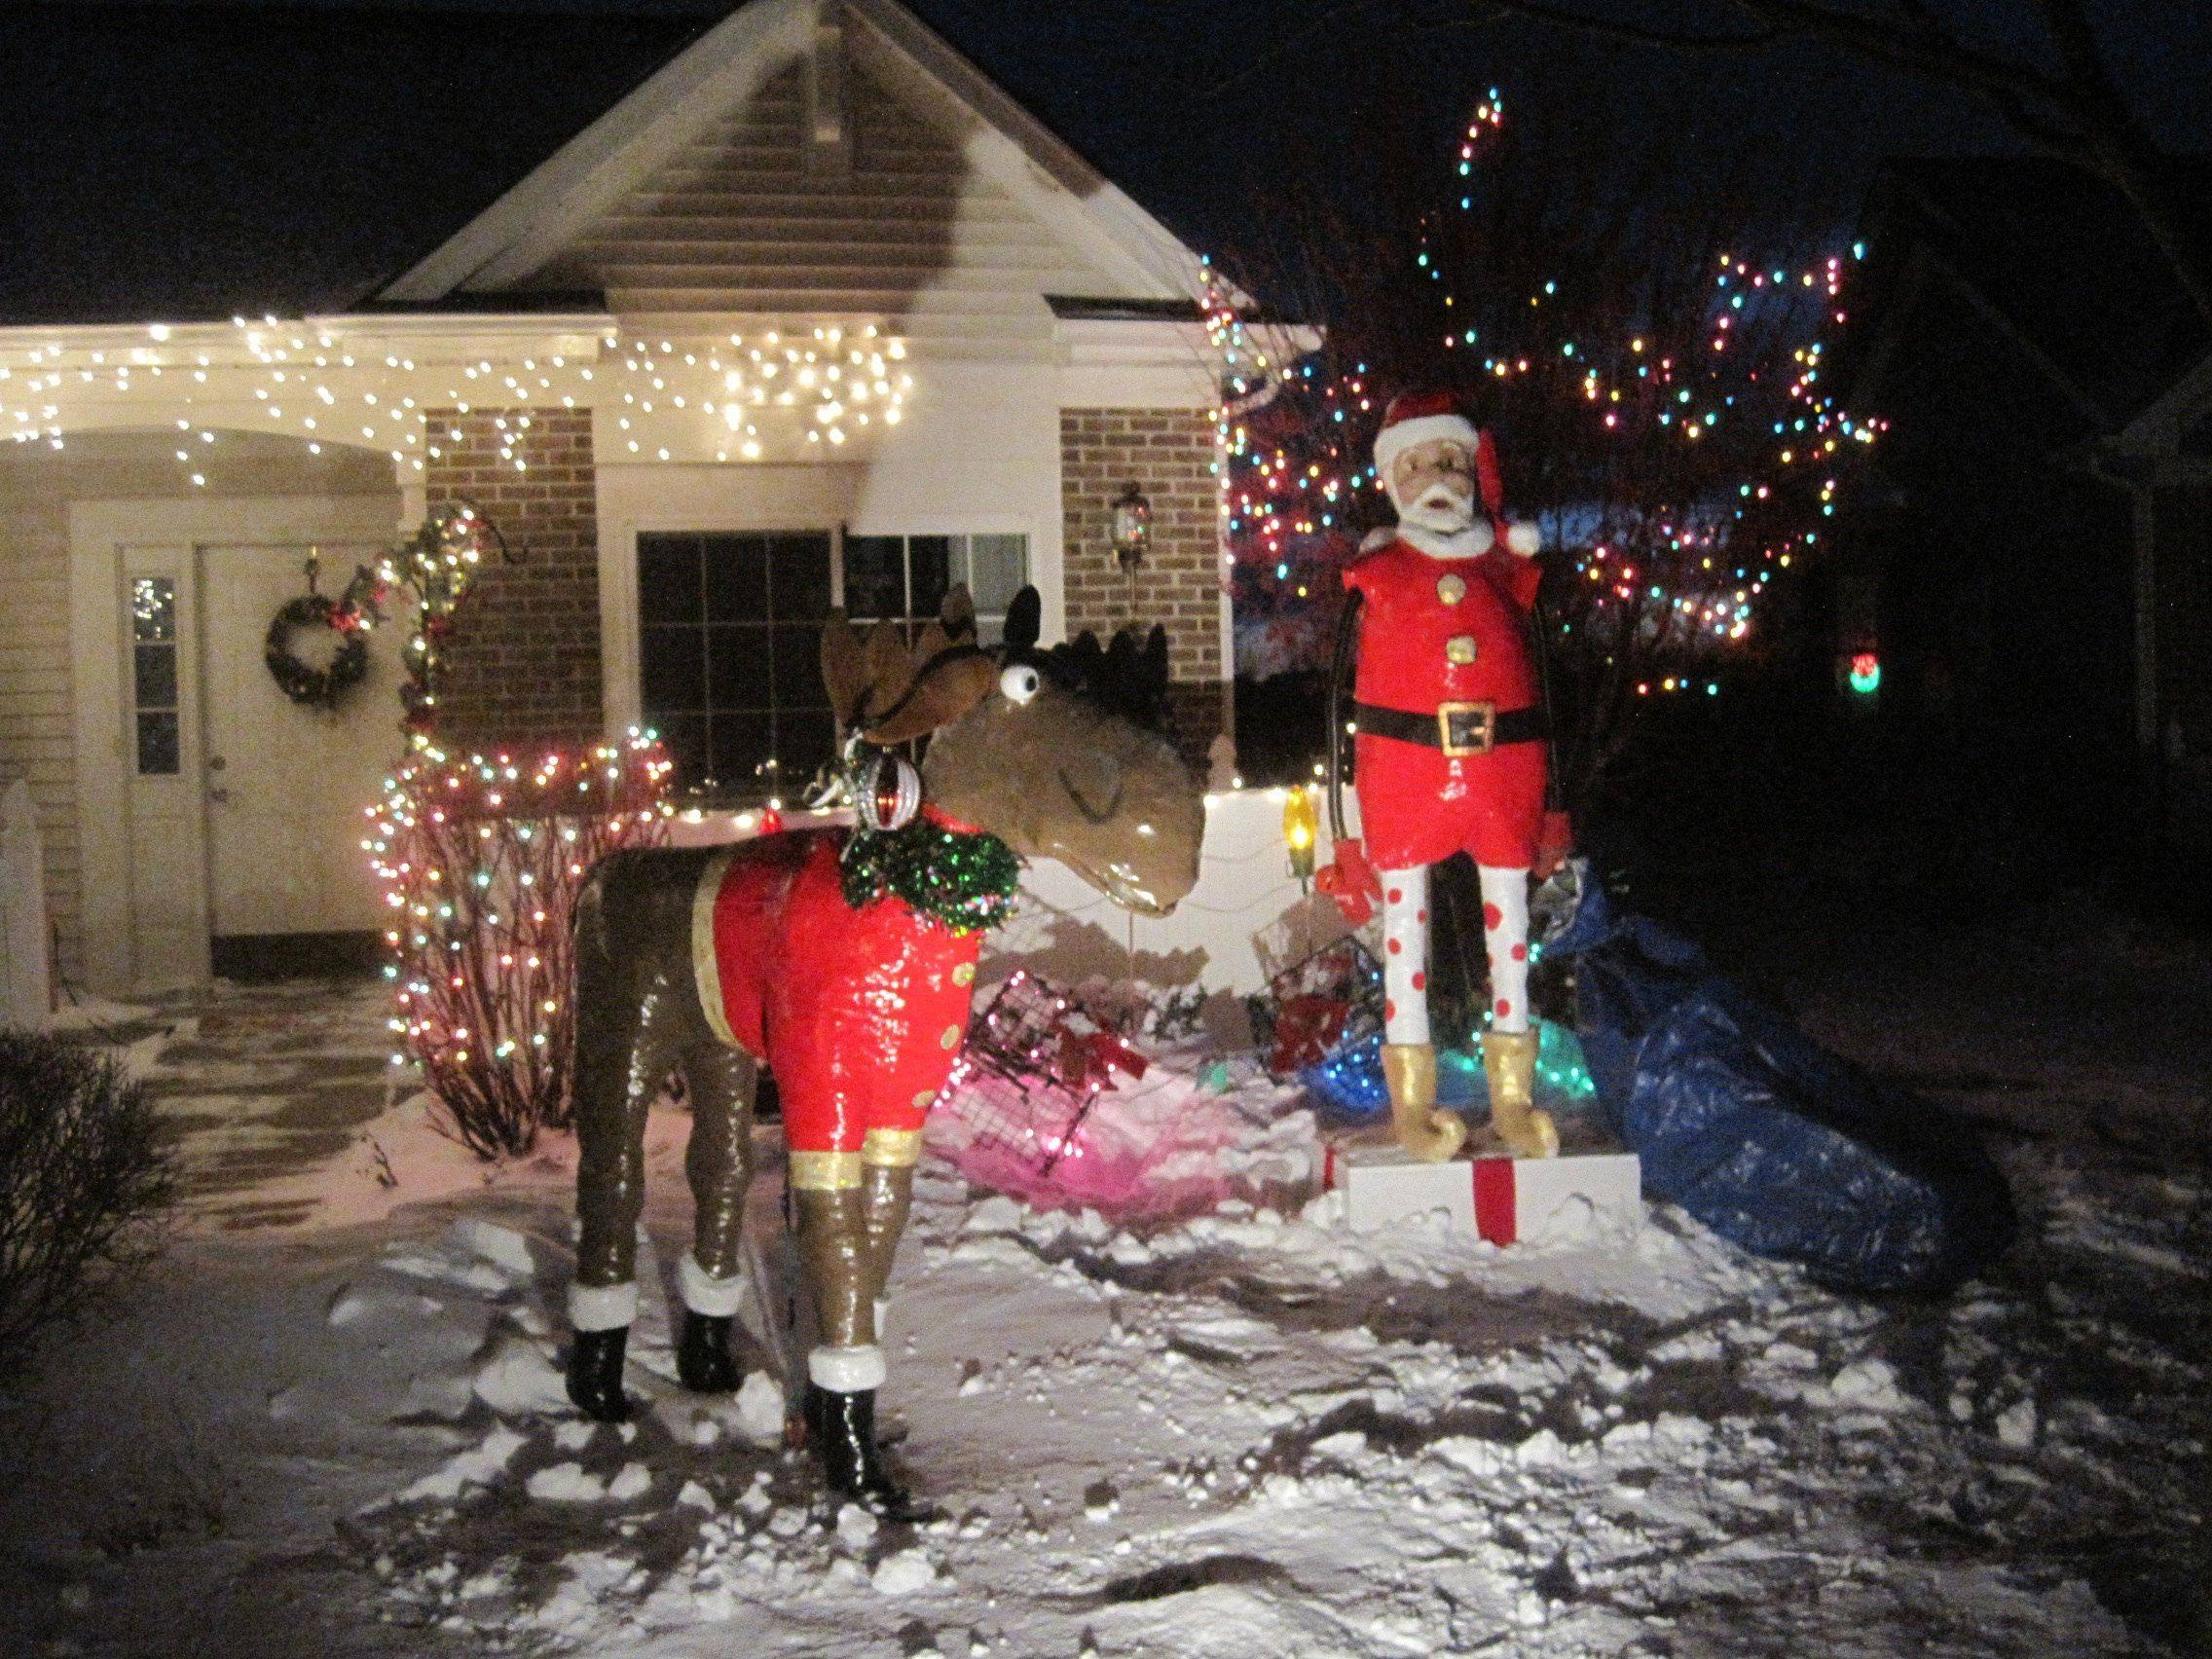 Santa and a reindeer welcome visitors to William Bach's home at 225 Enfield Lane in Grayslake.